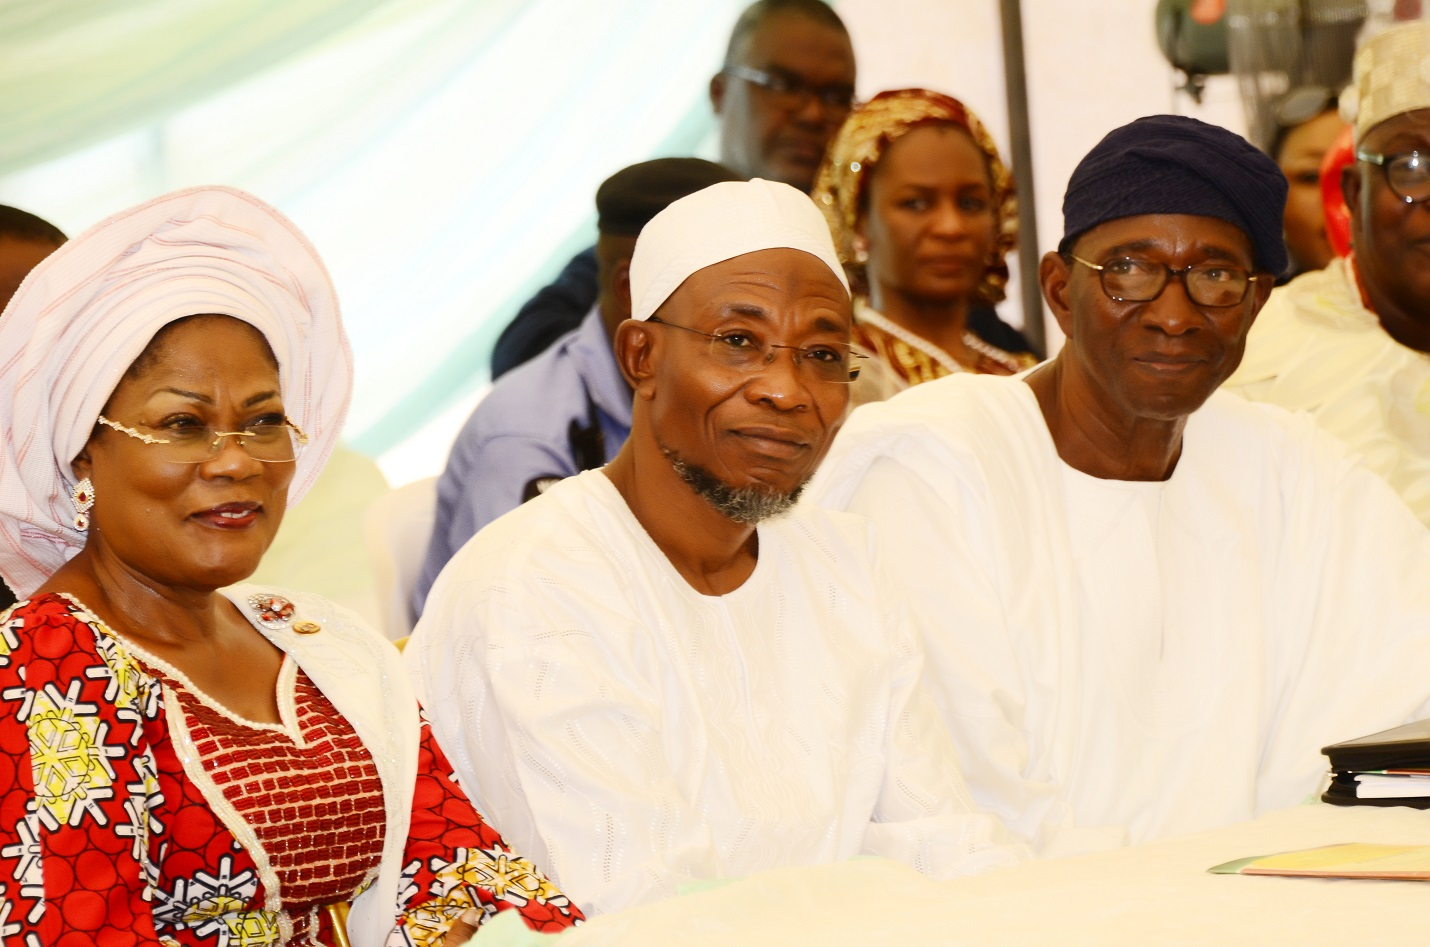 From left, Deputy Governor State of Osun, Mrs Titi Laoye-Tomori; Governor Rauf Aregbesola and Vice Chairman, Board of Trustees (BOT) Igbajo Polytechnic, Chief Moses Aboaba, during the Polytechnic's 1st Education Summit at the School Premises, Igbajo, State of Osun on Thursday 09-10-2014